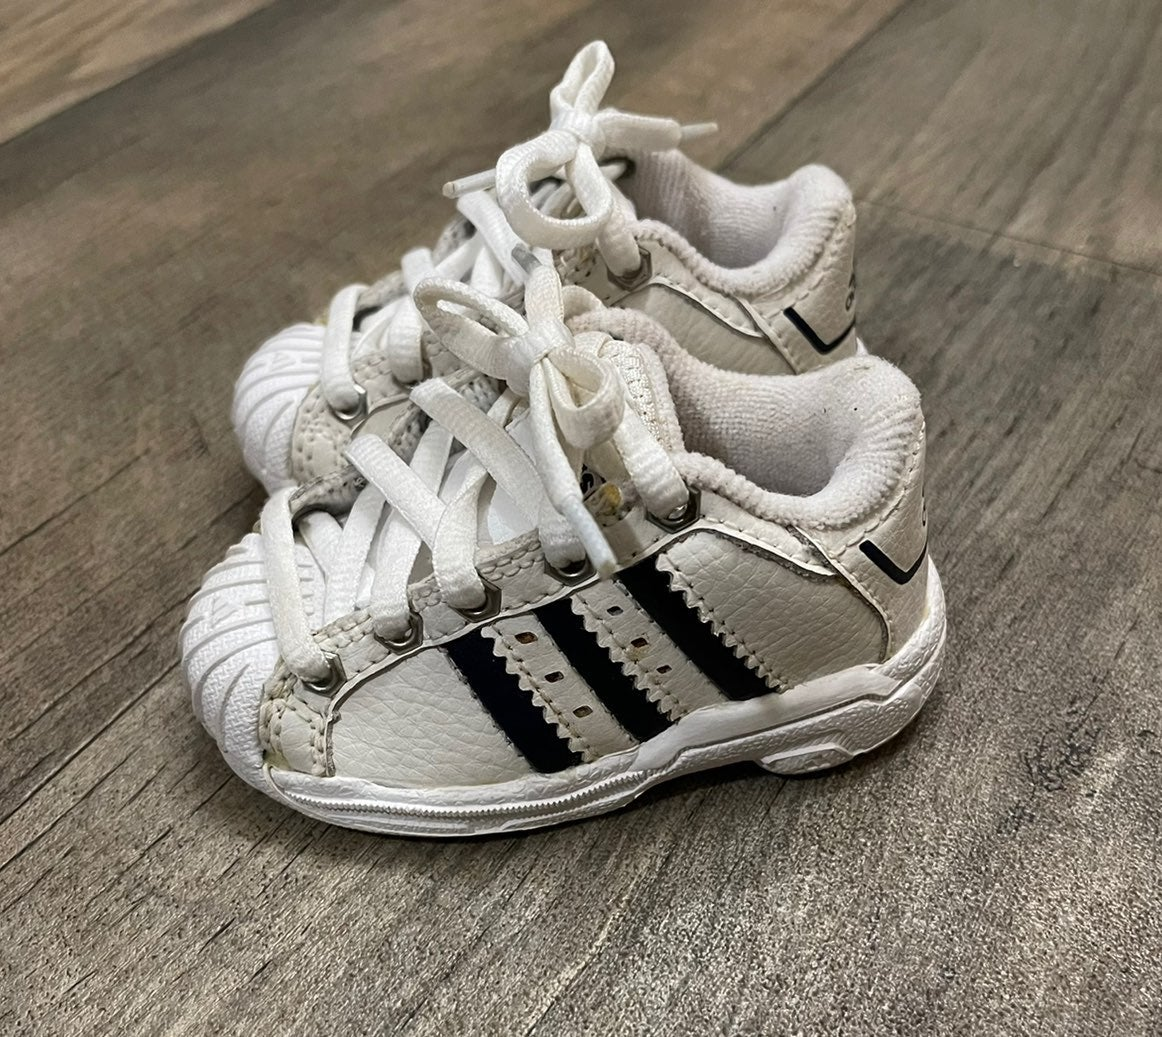 Adidas Shell Toe Toddler Shoes Size 3